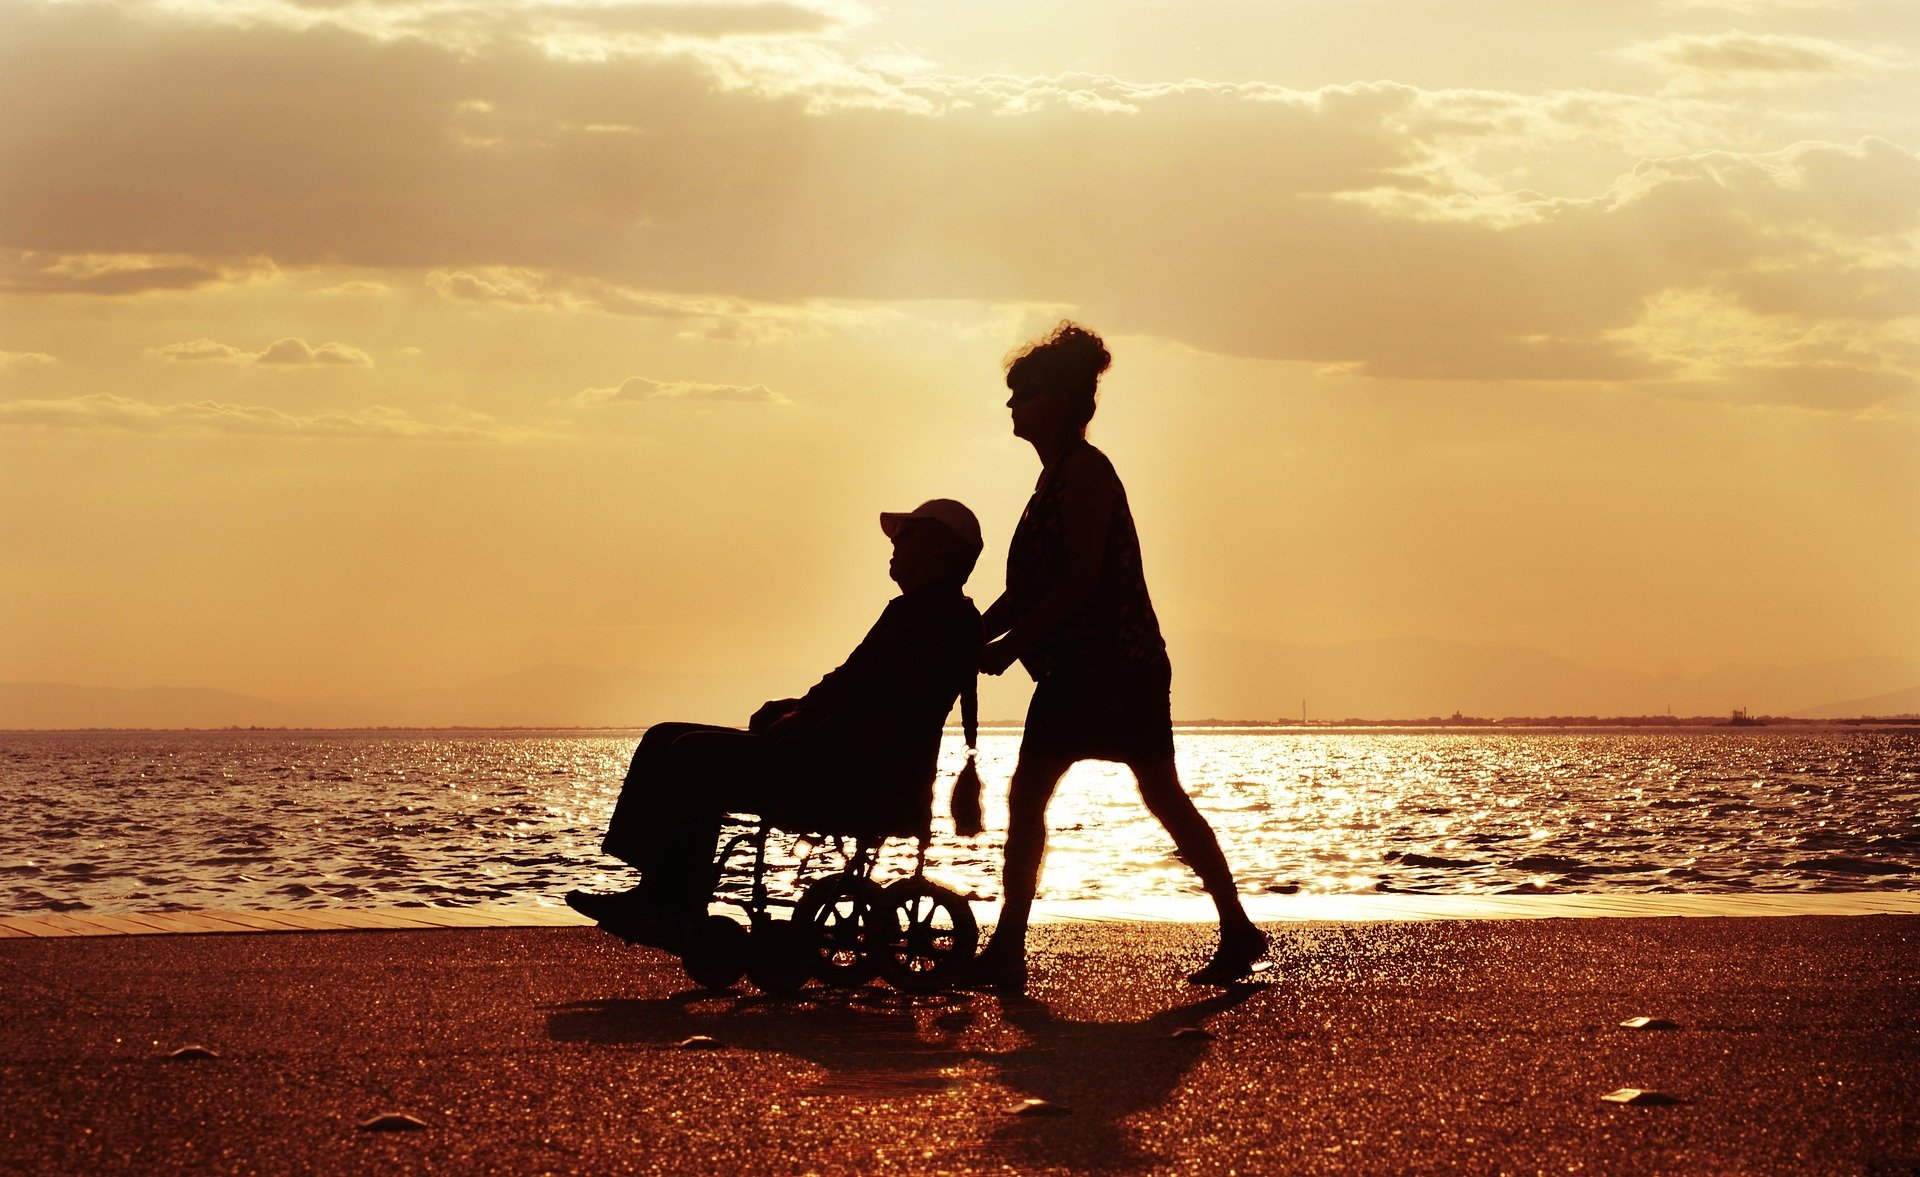 A woman pushing a wheelchair bound person along the beach. | Source: Pixabay.